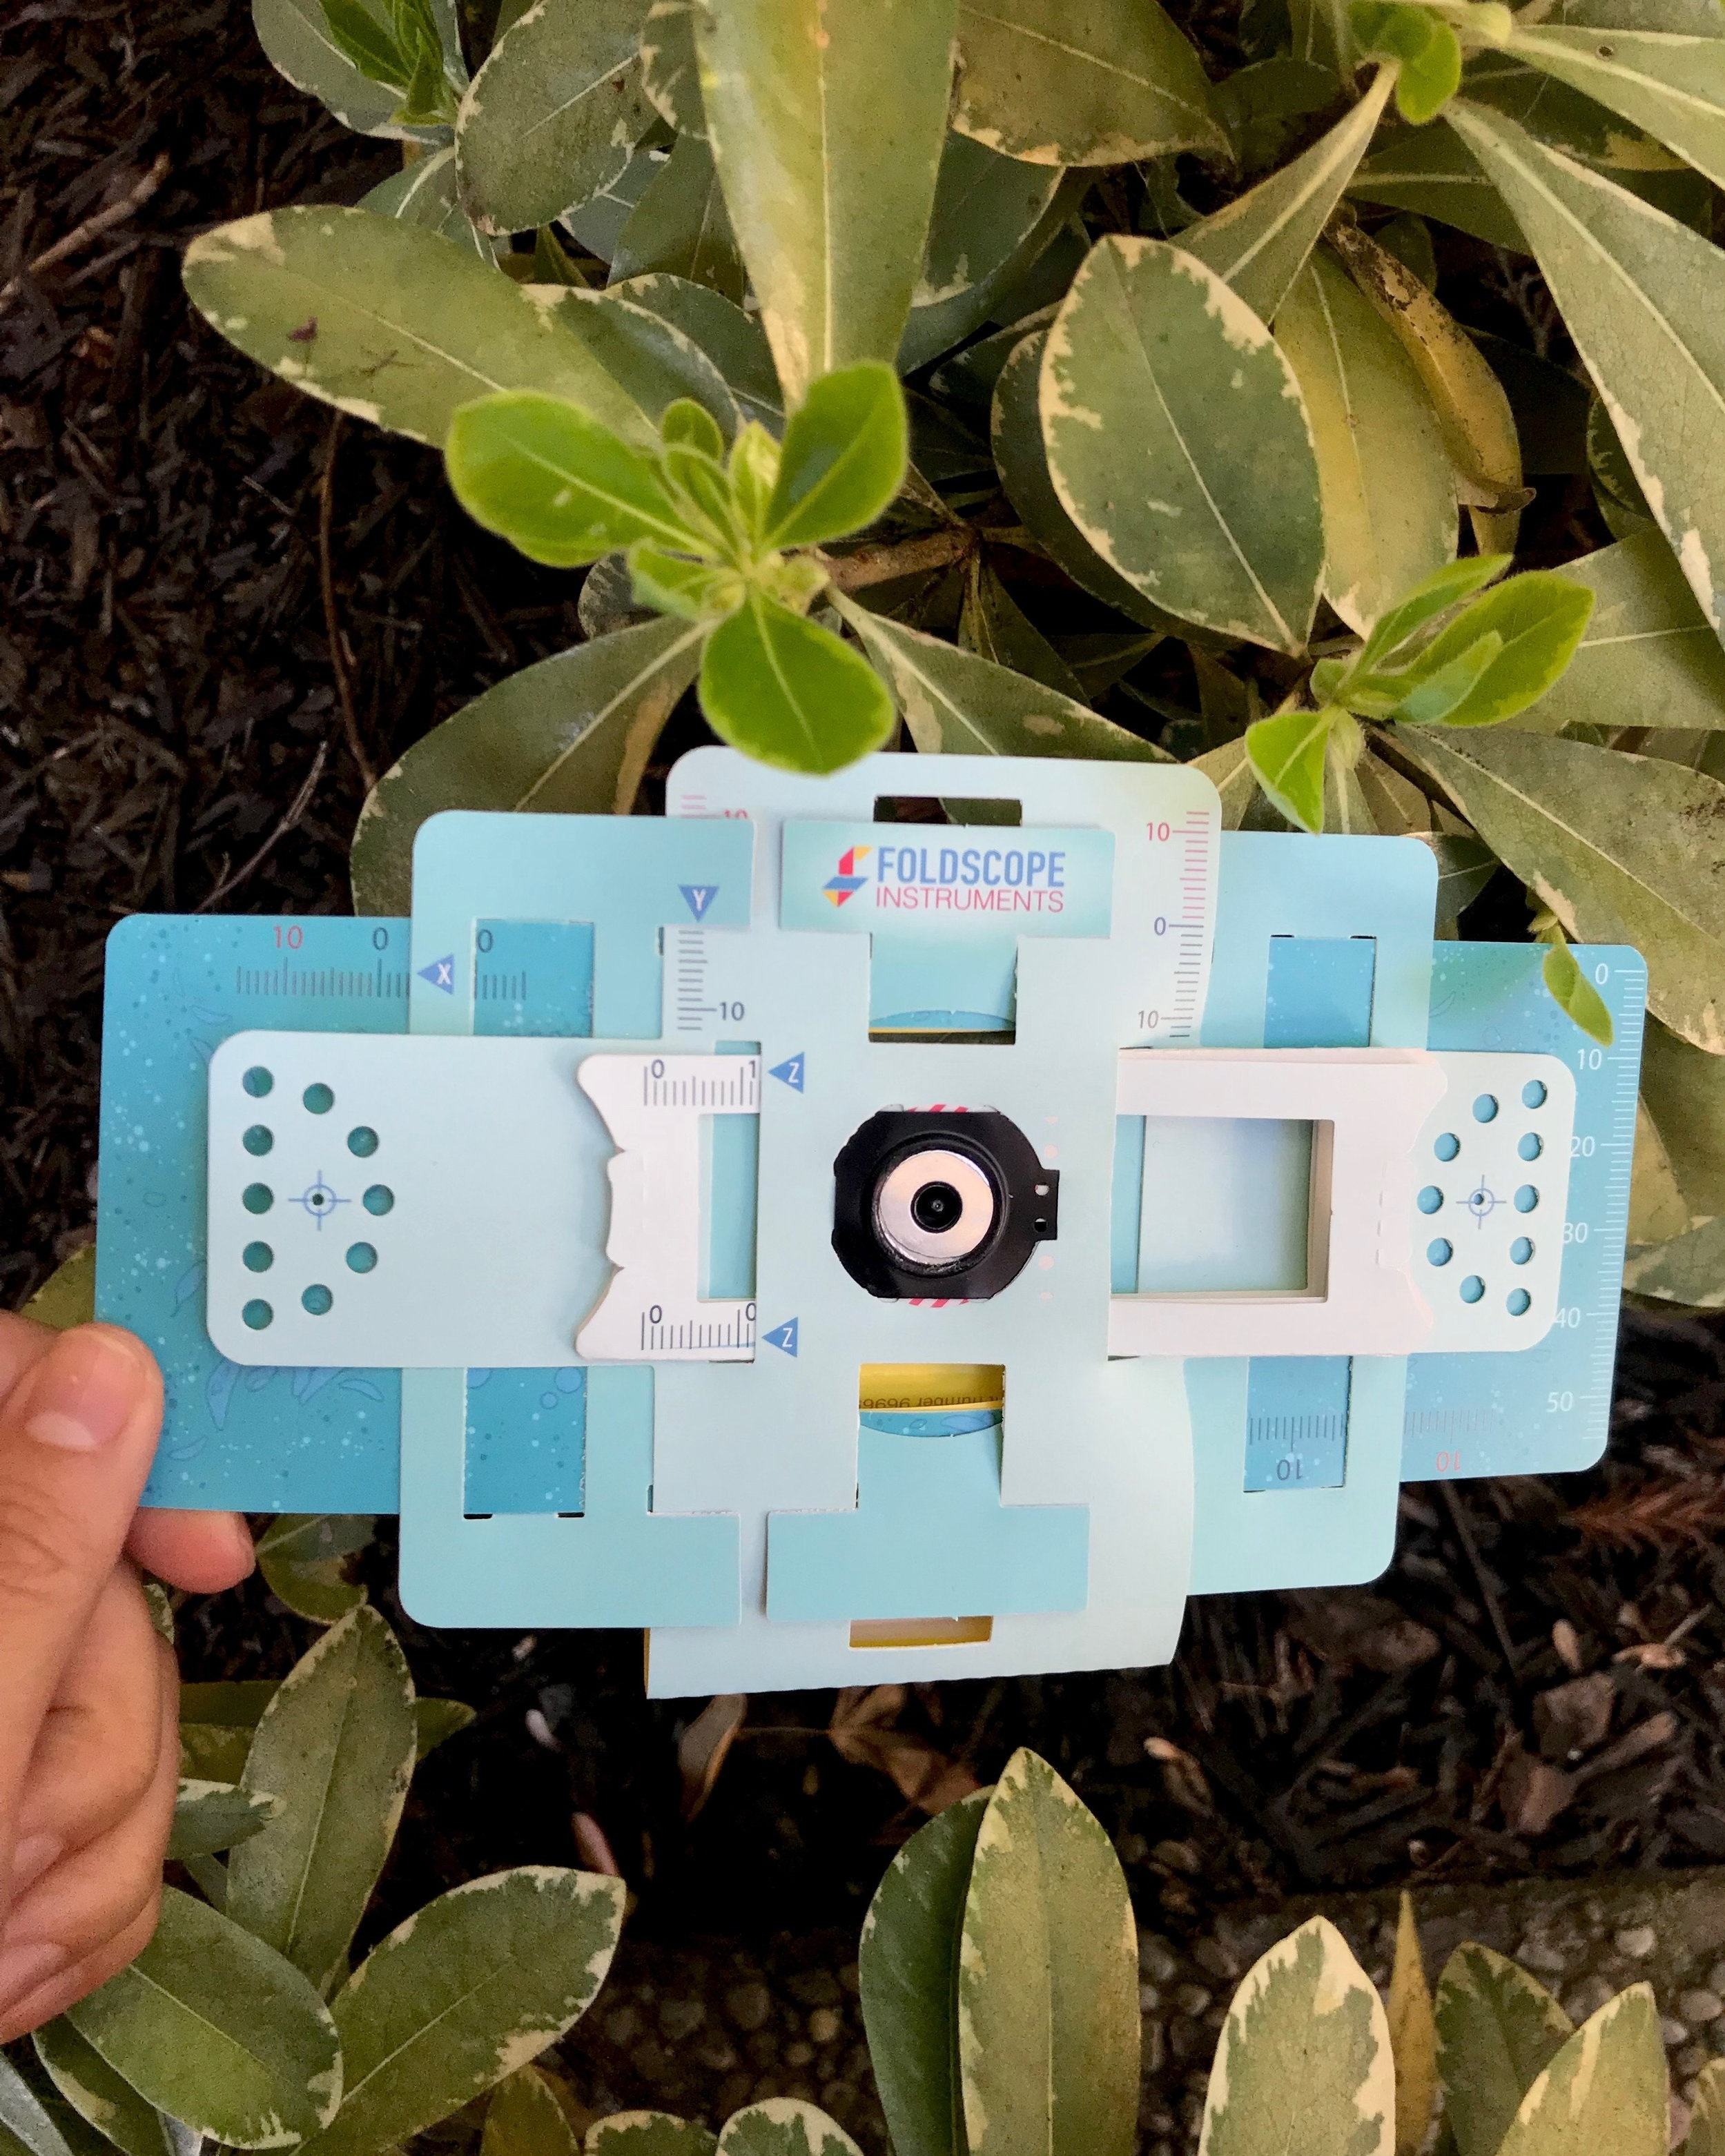 Foldscope clipped onto a leaf